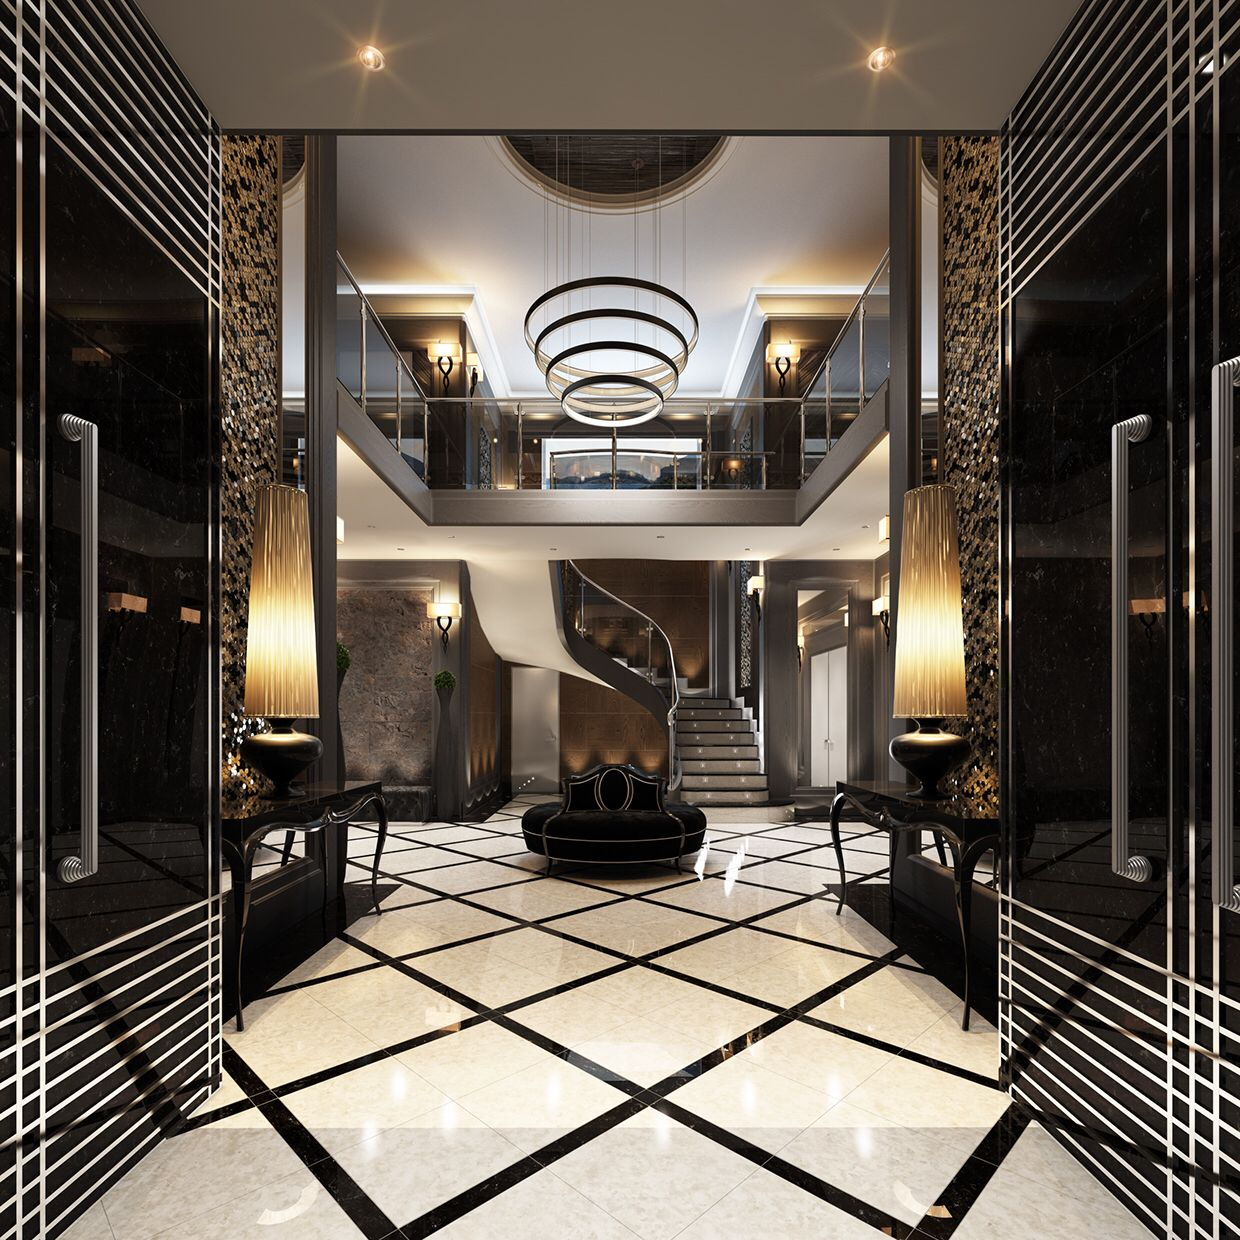 Dazzling And Luxurious Interiors For Your Inspiration